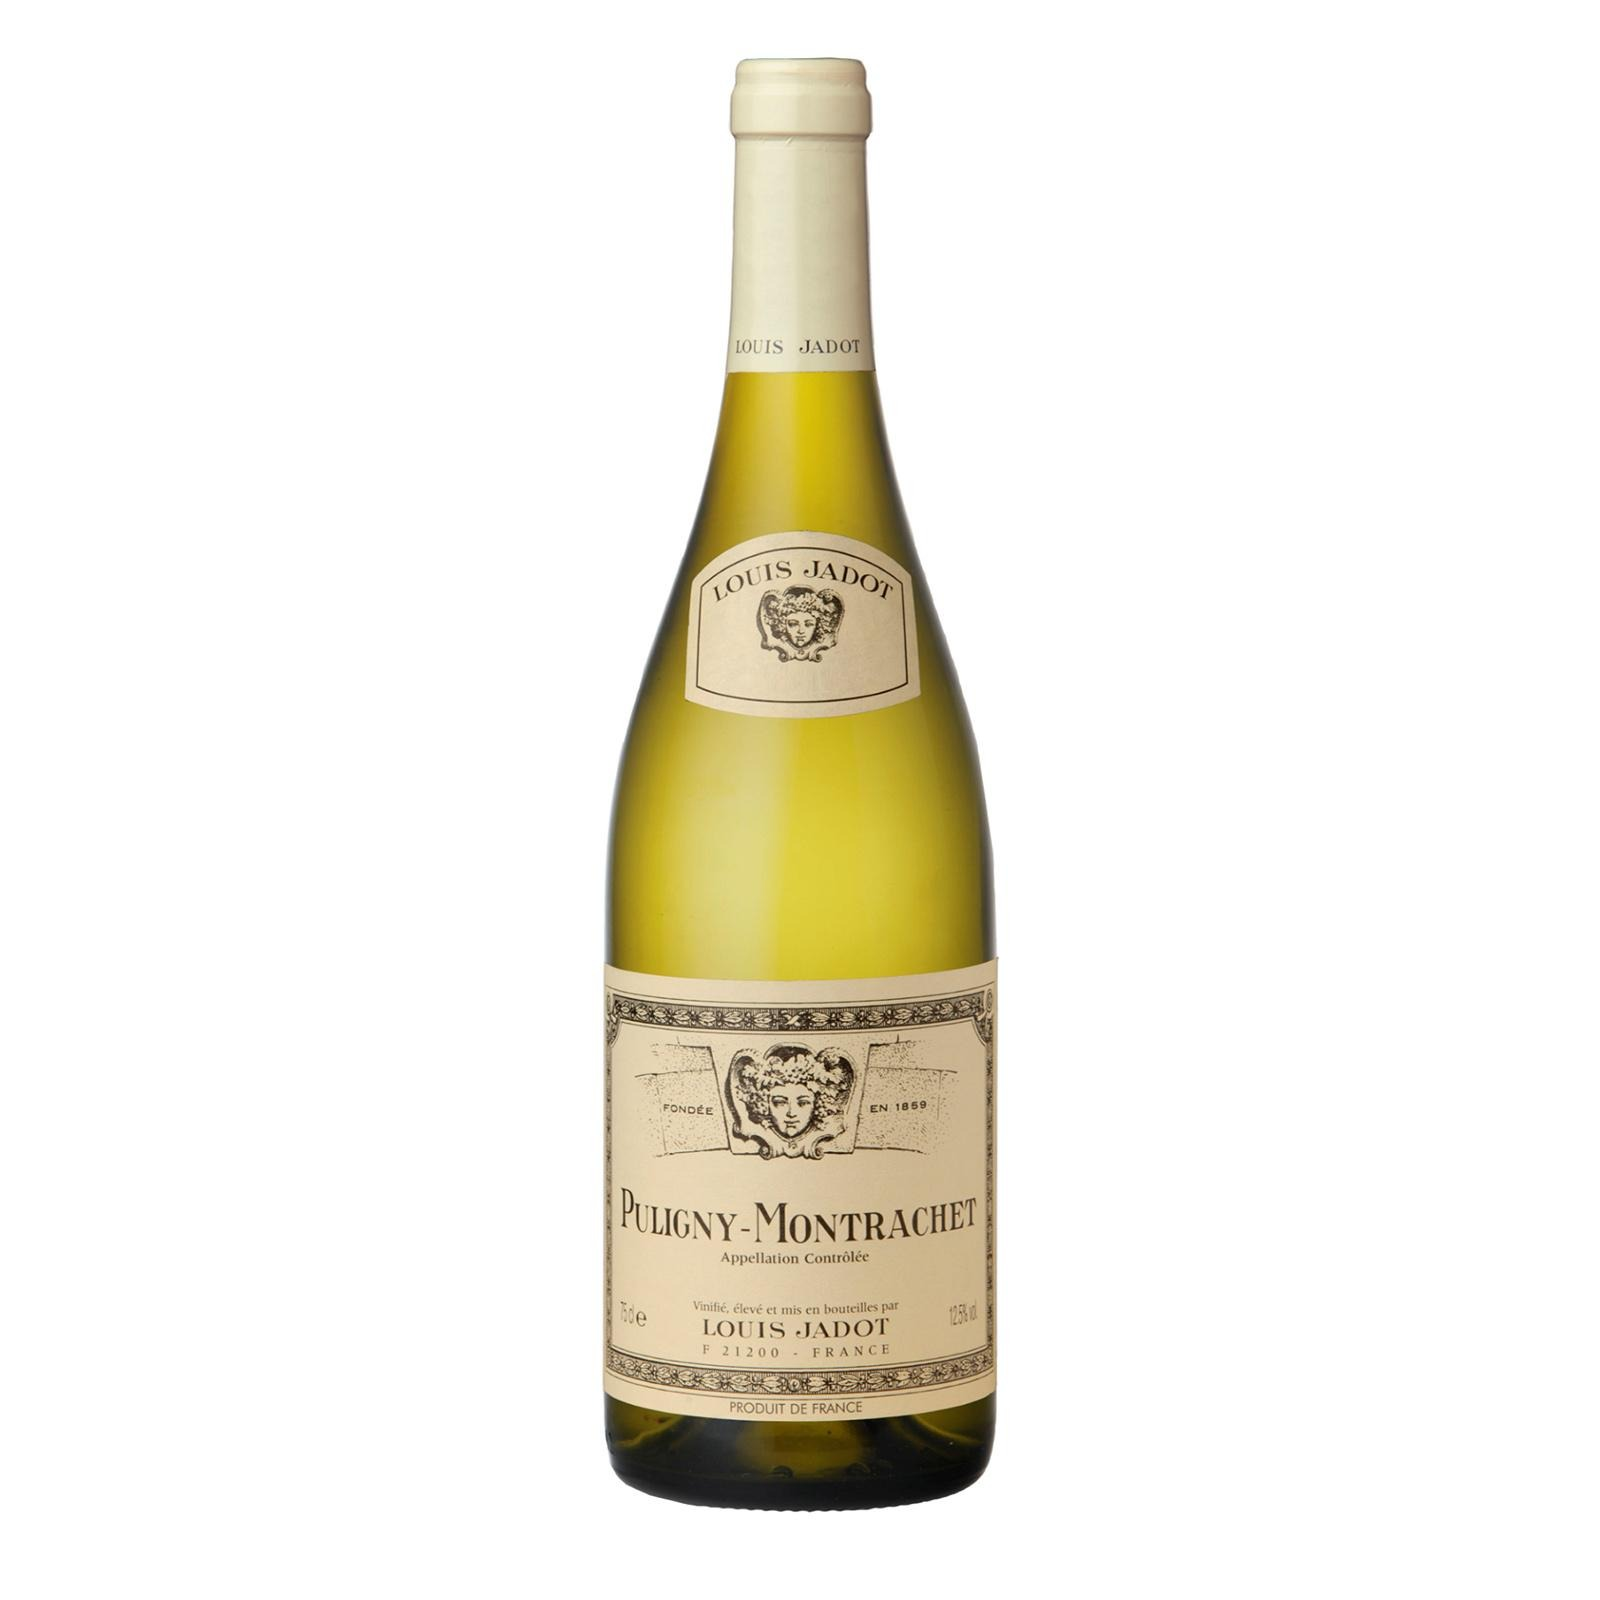 Louis Jadot Puligny-Montrachet-By Culina